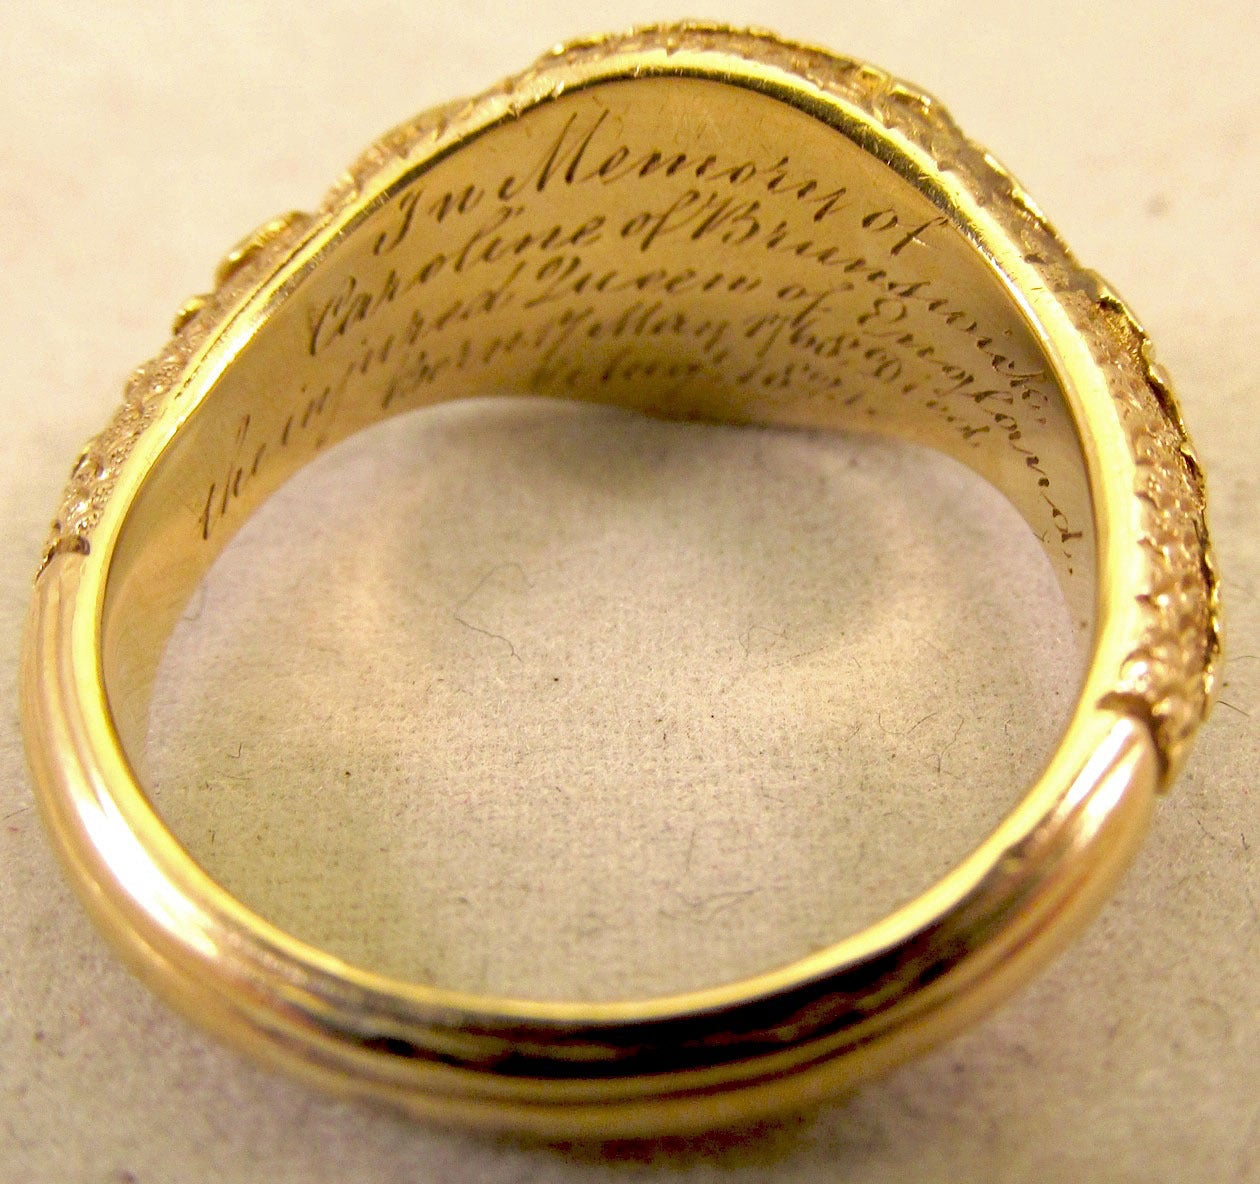 Antique Gold Memorial Ring Caroline of Brunswick Wife of George IV For Sale 1